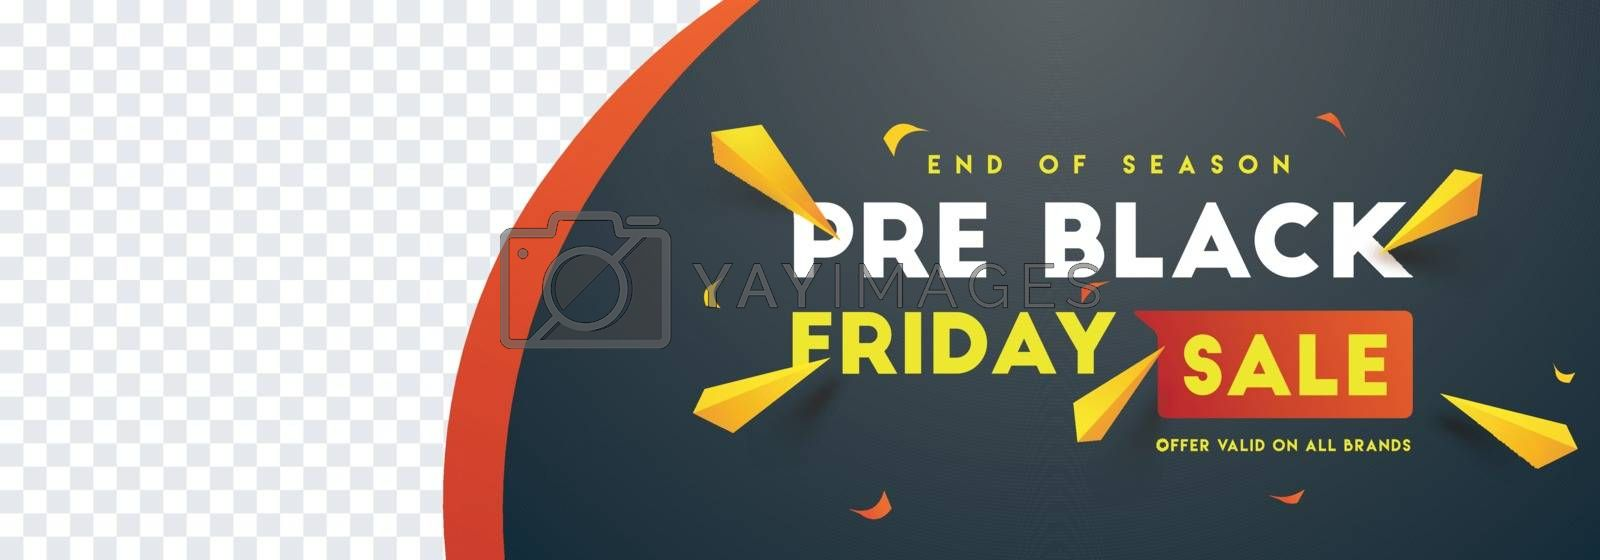 Pre Black Friday sale website banner design with space for your product image